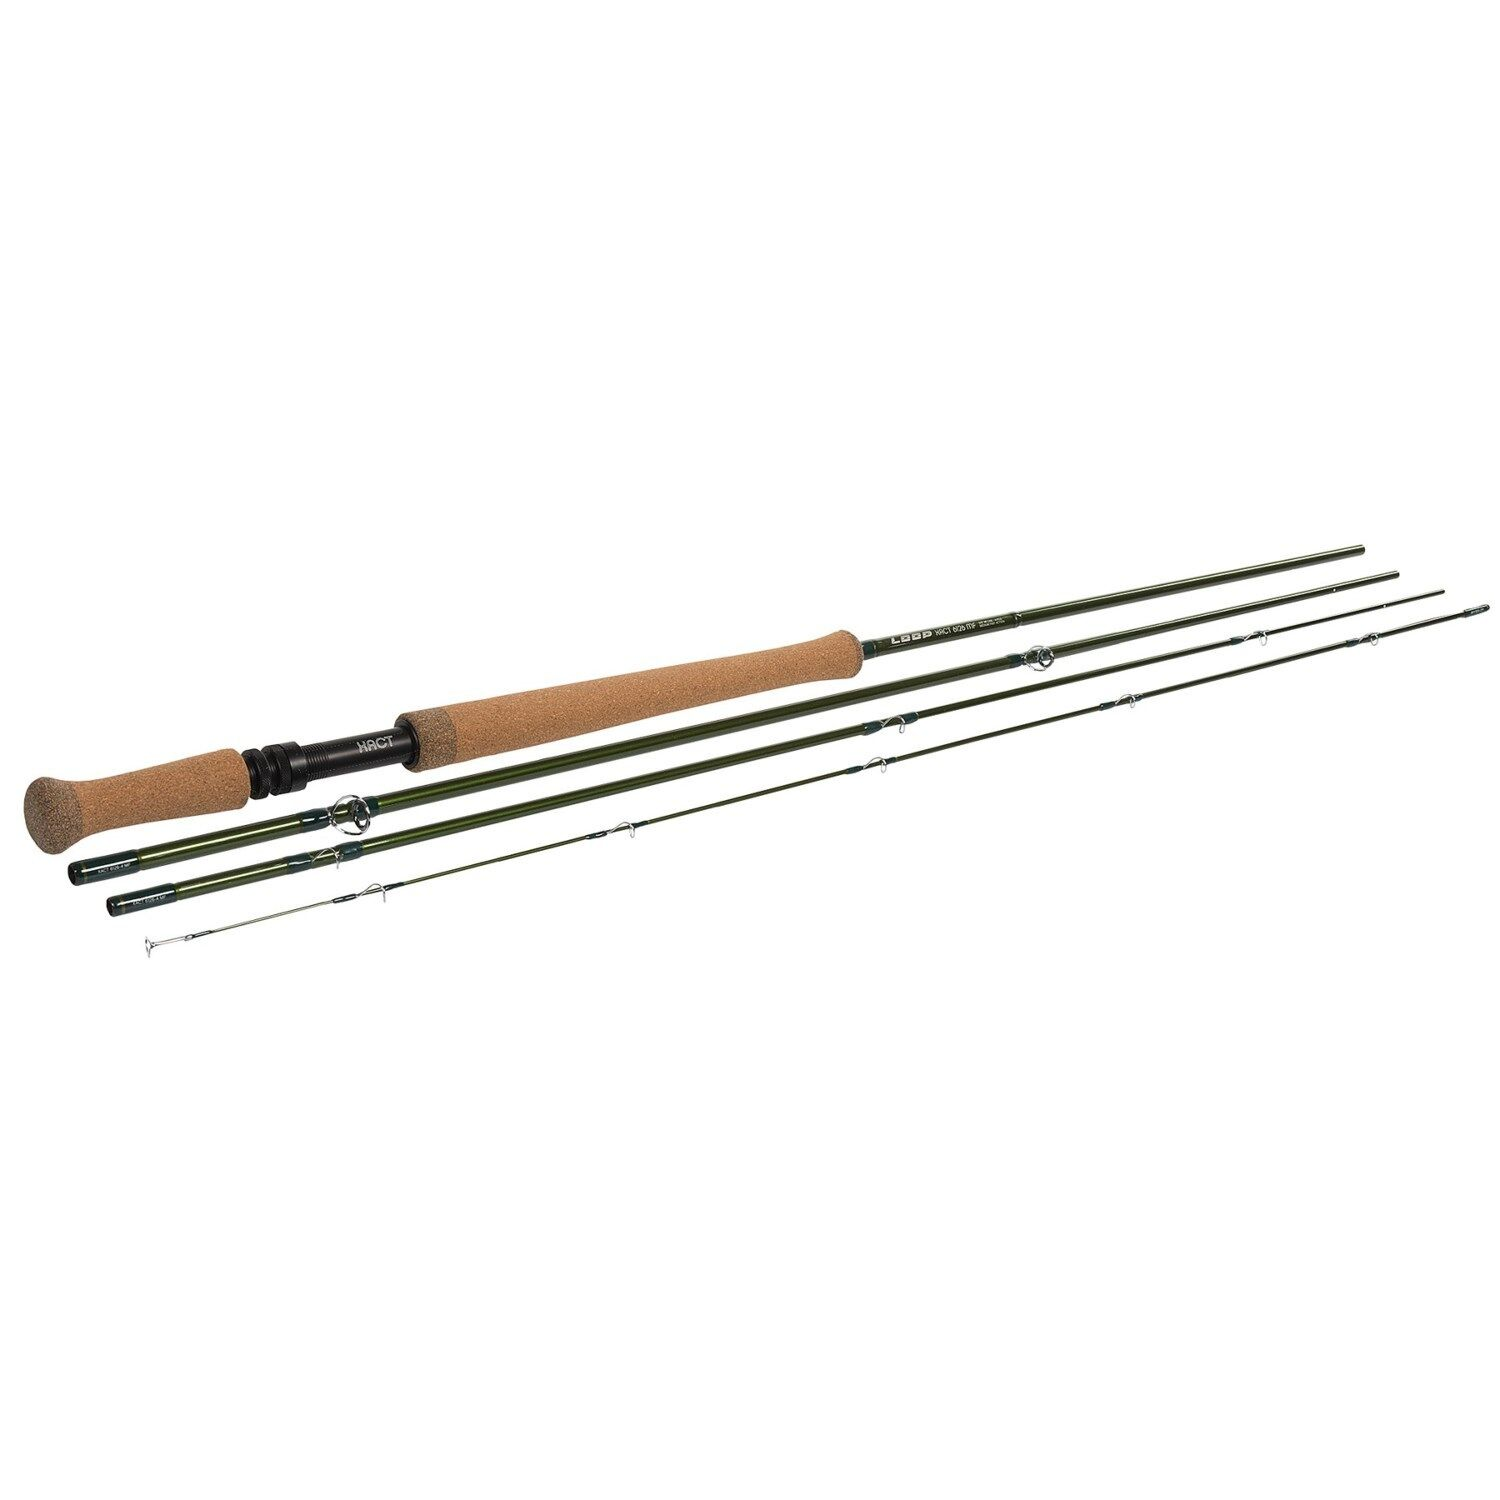 NEW Loop Xact Medium-Fast Fly Rod 4-Piece Double-Hand 12.6FT-8WT XACT2 8126-4 MF